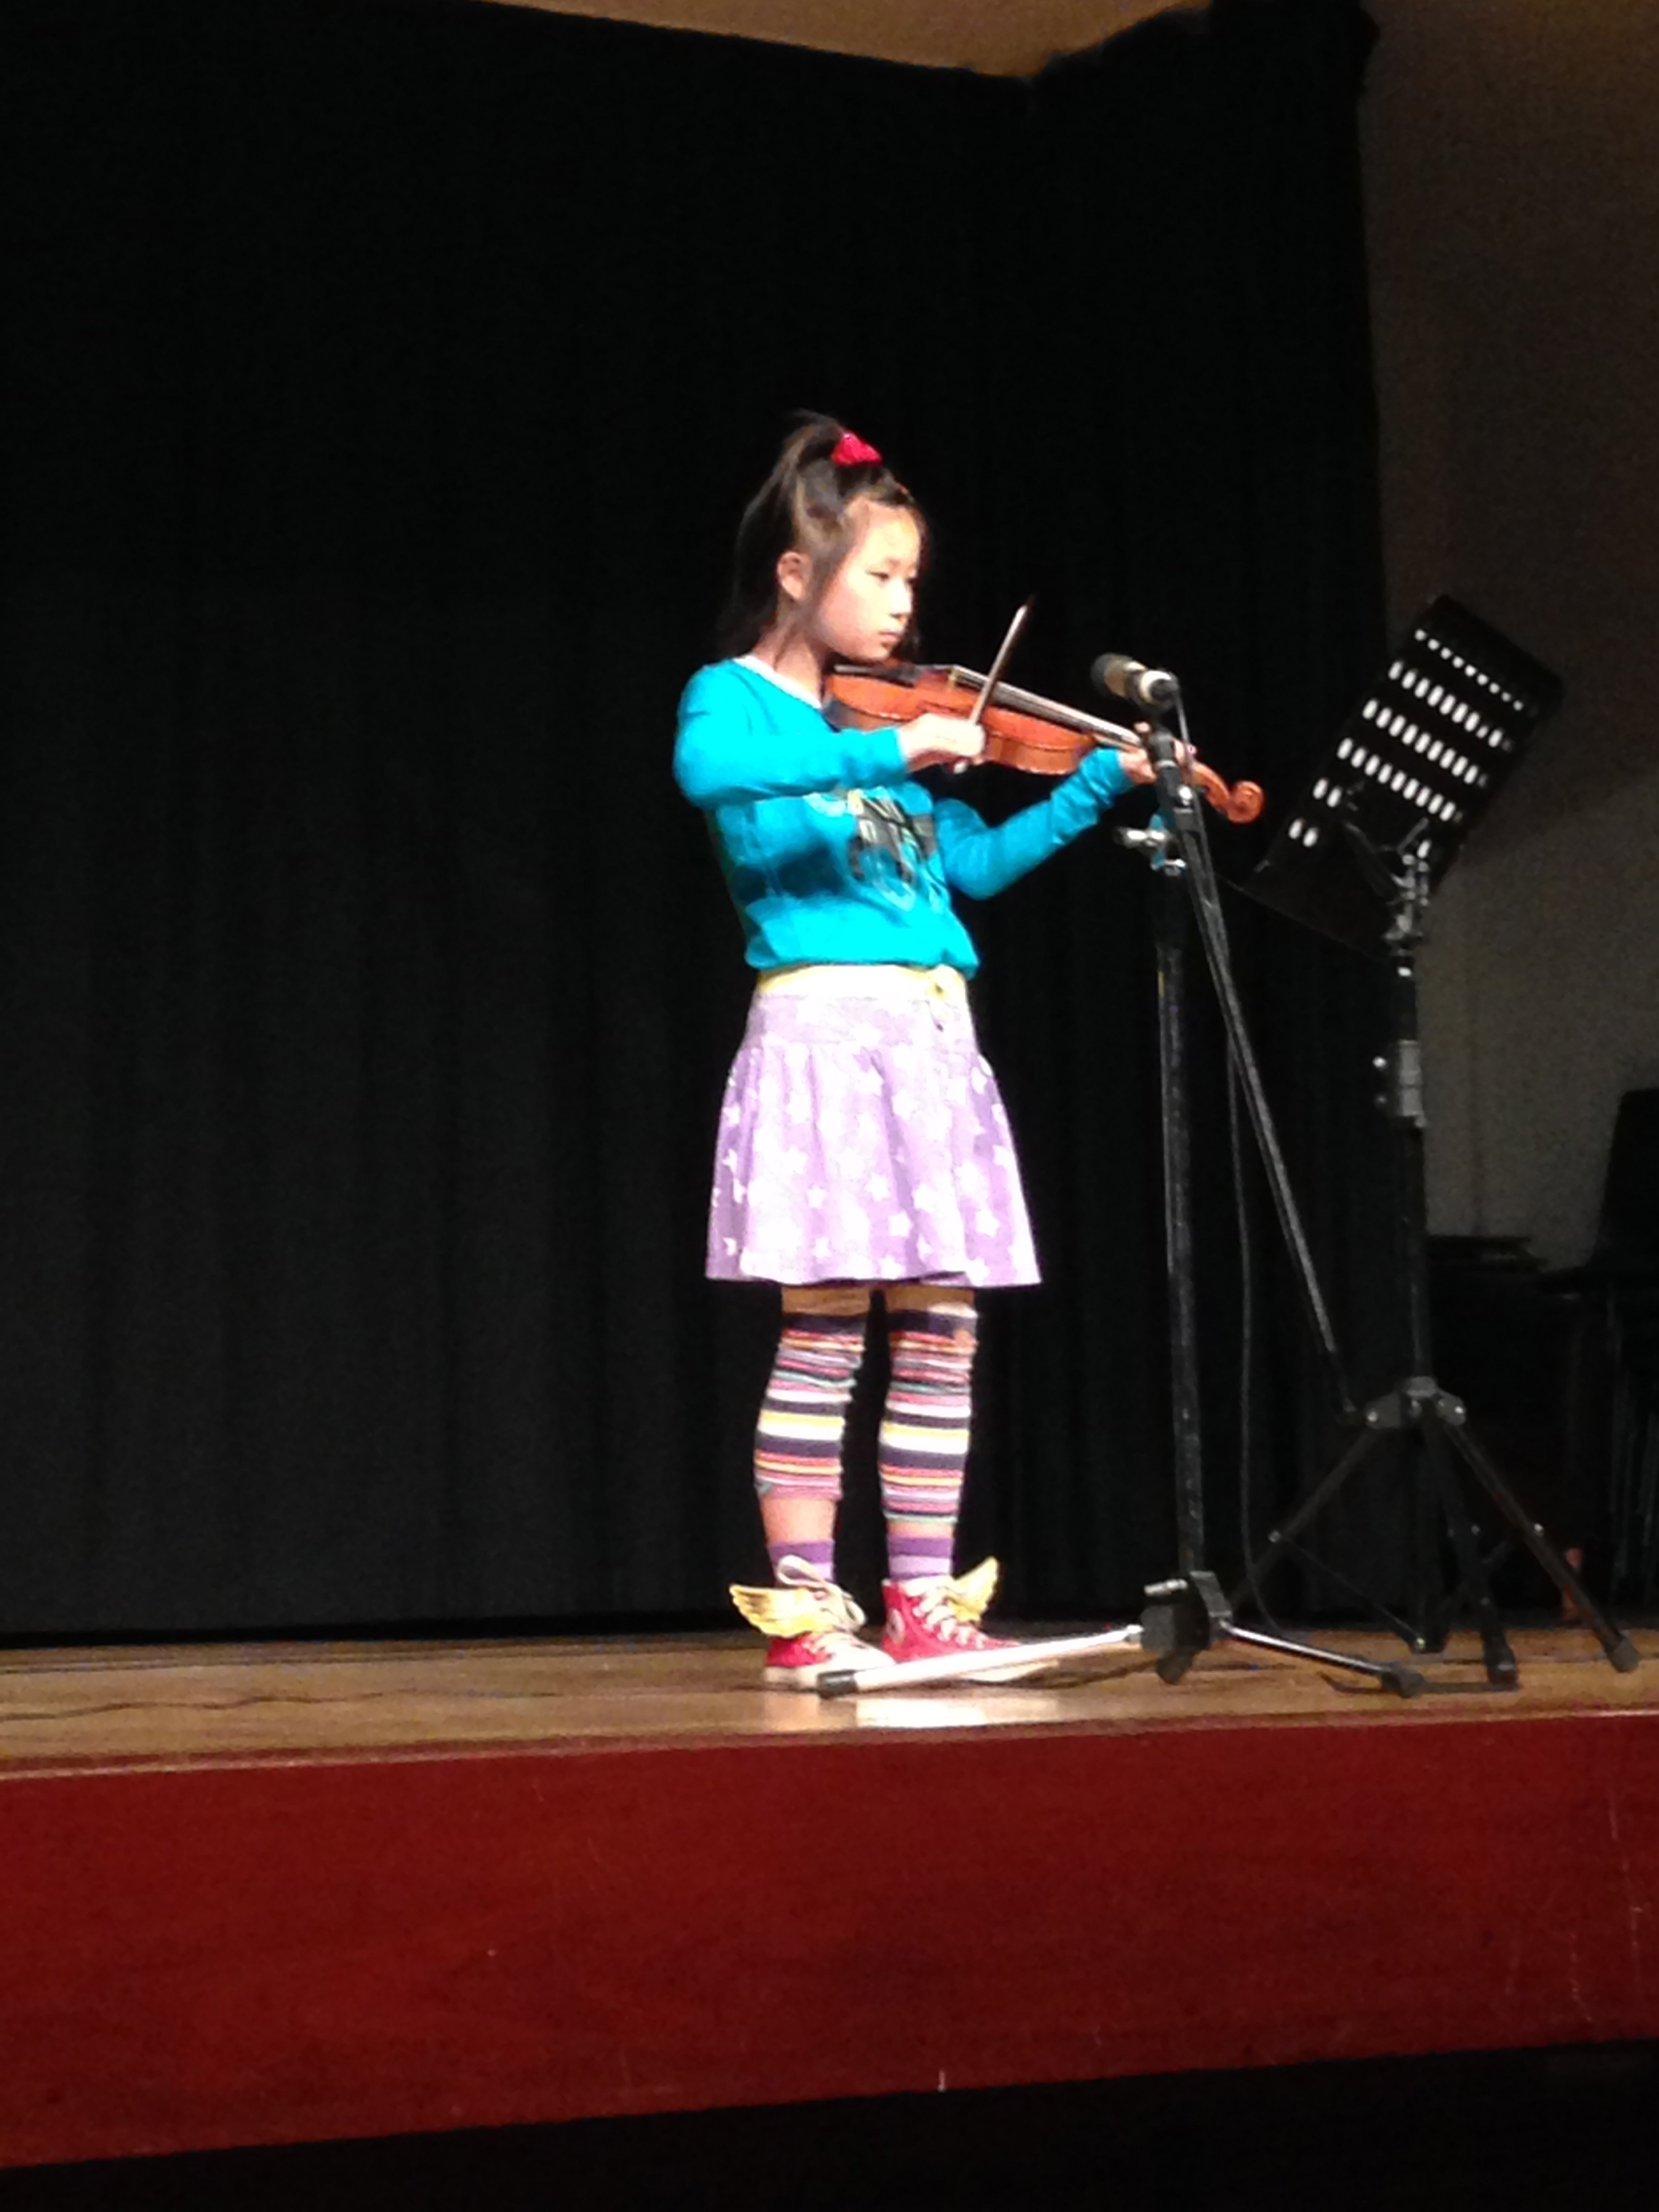 Young ESM student playing violin